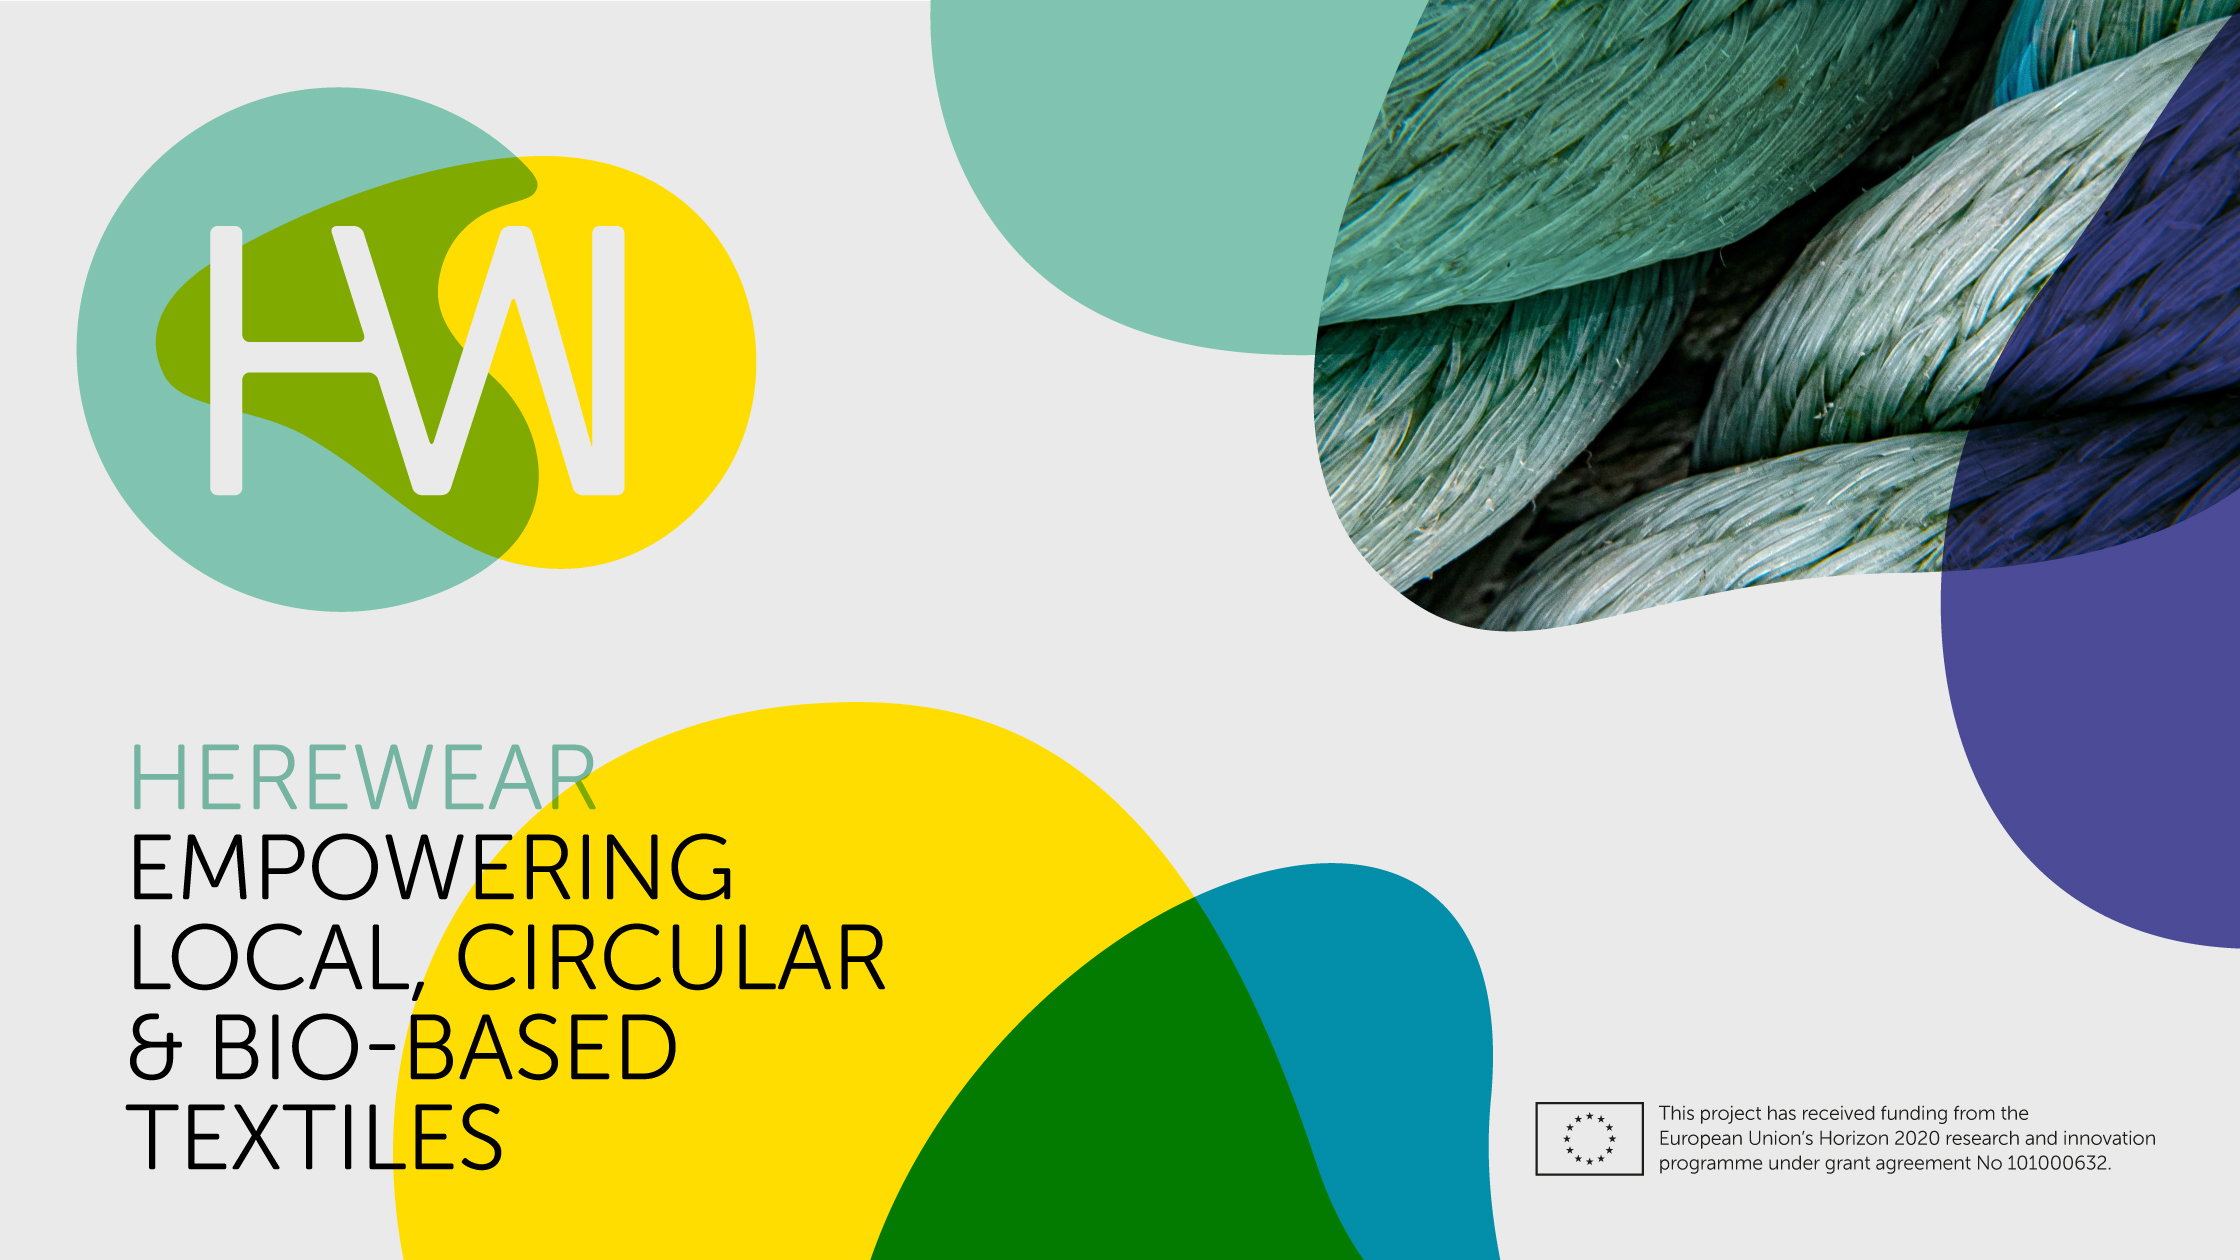 Herewear project - Horizon 2020 - European Union - logo - empowering local, circular and bio-based textiles